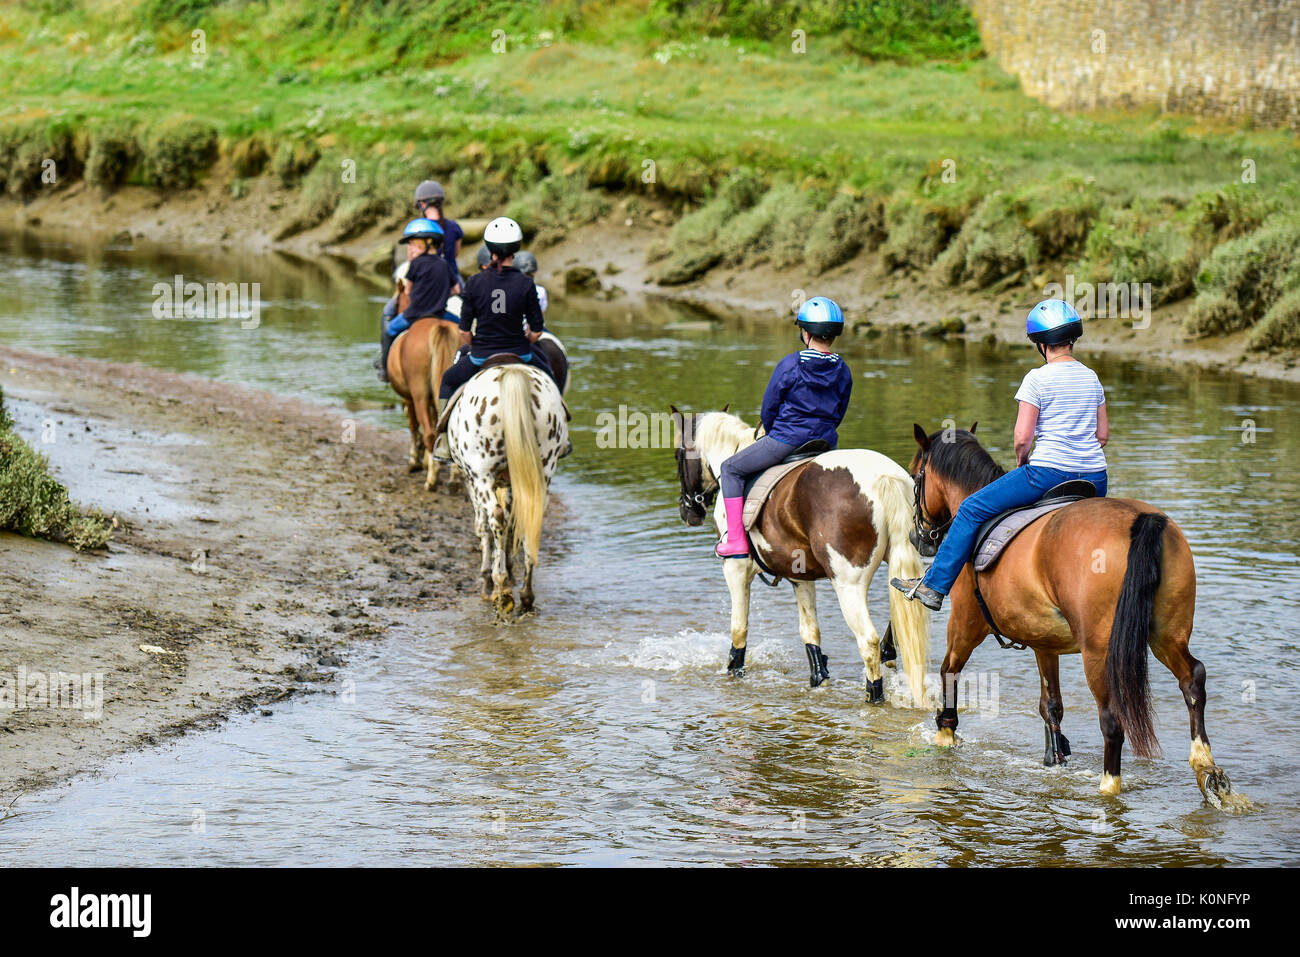 Pony trekking along the Gannel River and tidal estuary in Newquay in Cornwall. Stock Photo